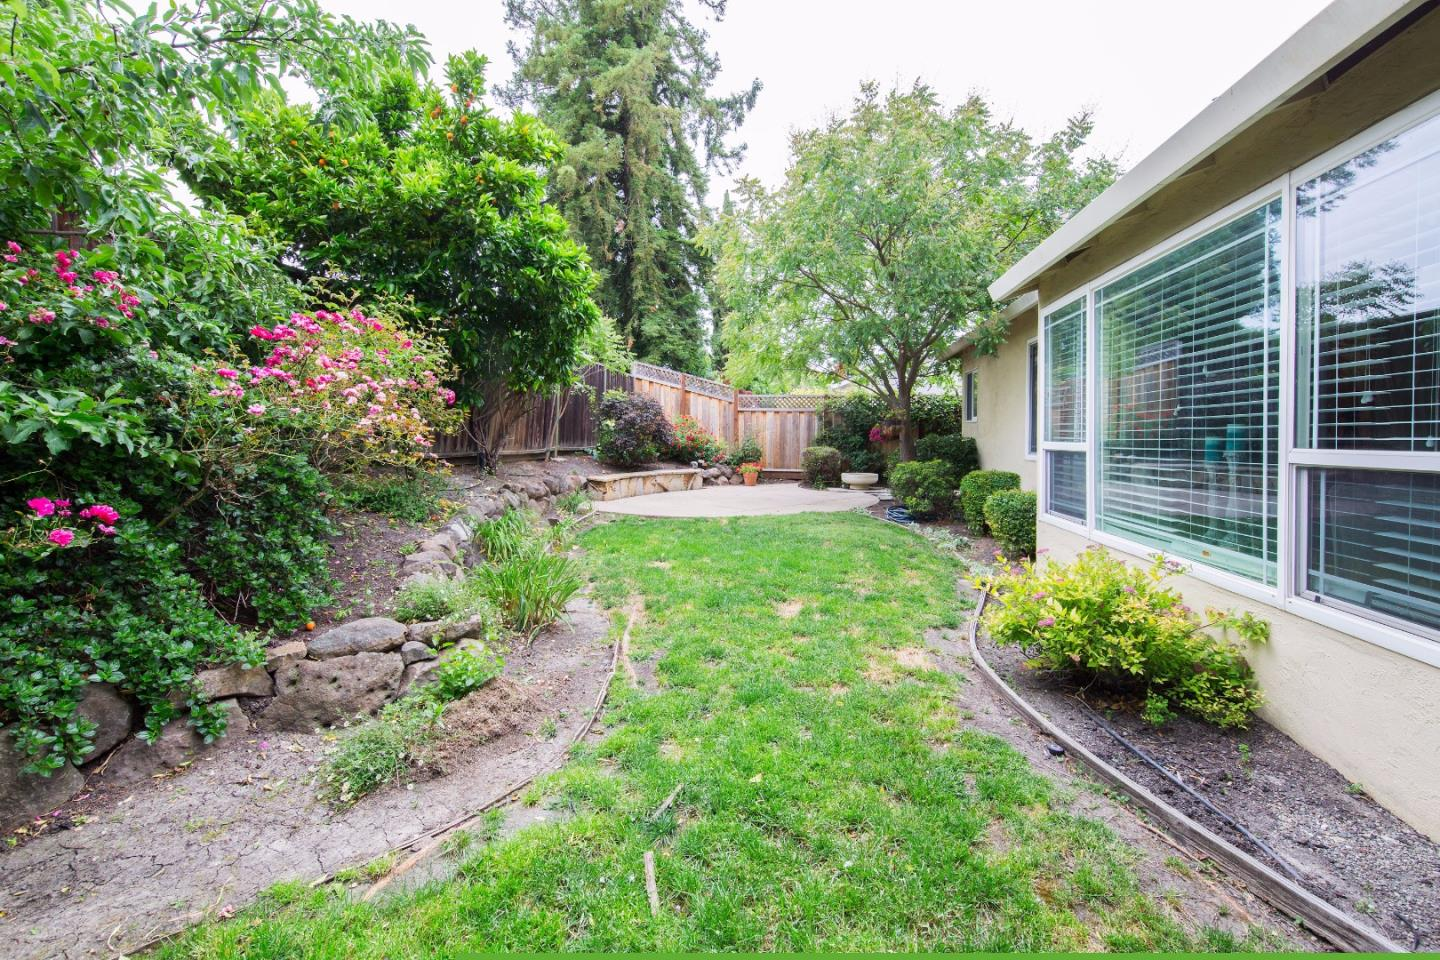 Additional photo for property listing at 9803 Davona Drive  San Ramon, California 94583 Estados Unidos